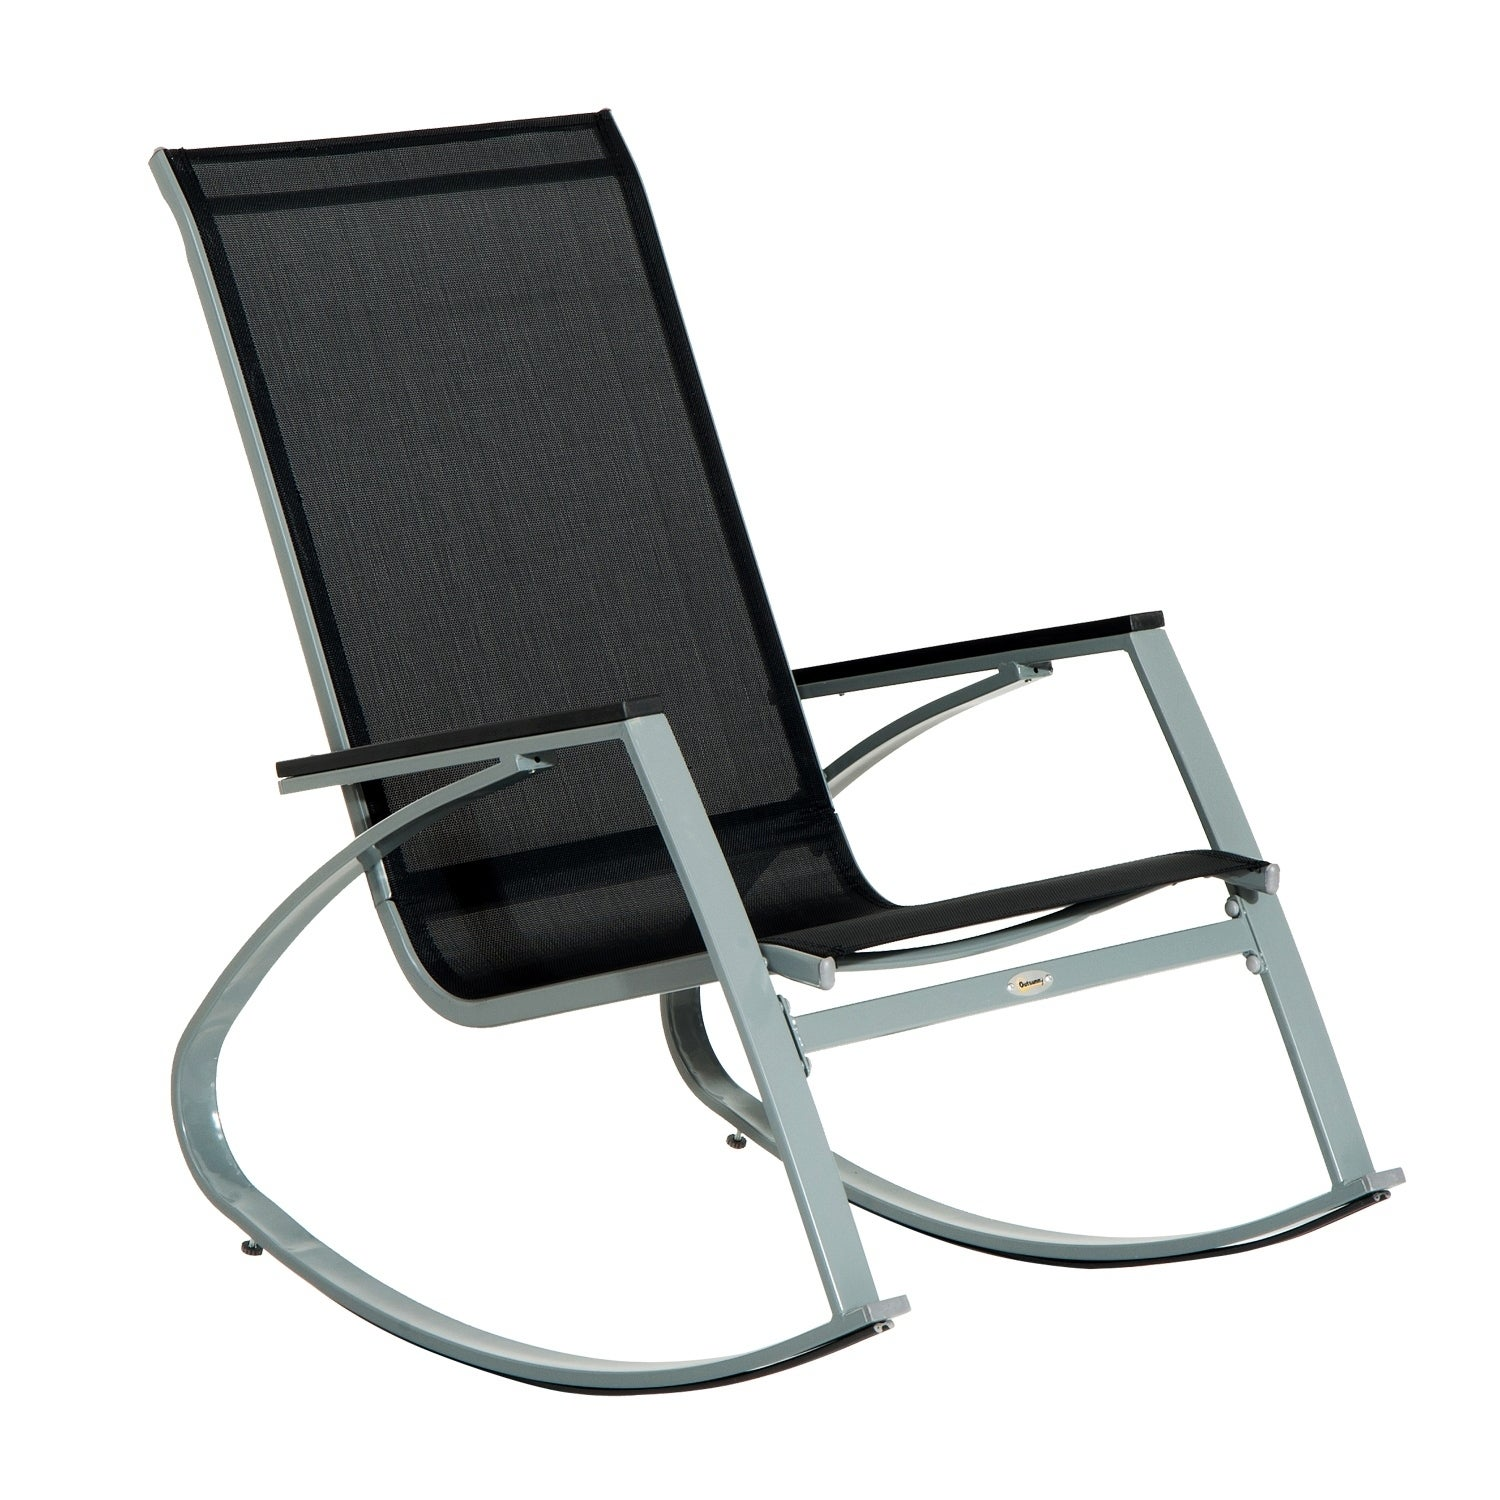 Shop Outsunny Padded Steel Sling Porch Rocker Patio Chair   Free Shipping  Today   Overstock.com   18013219